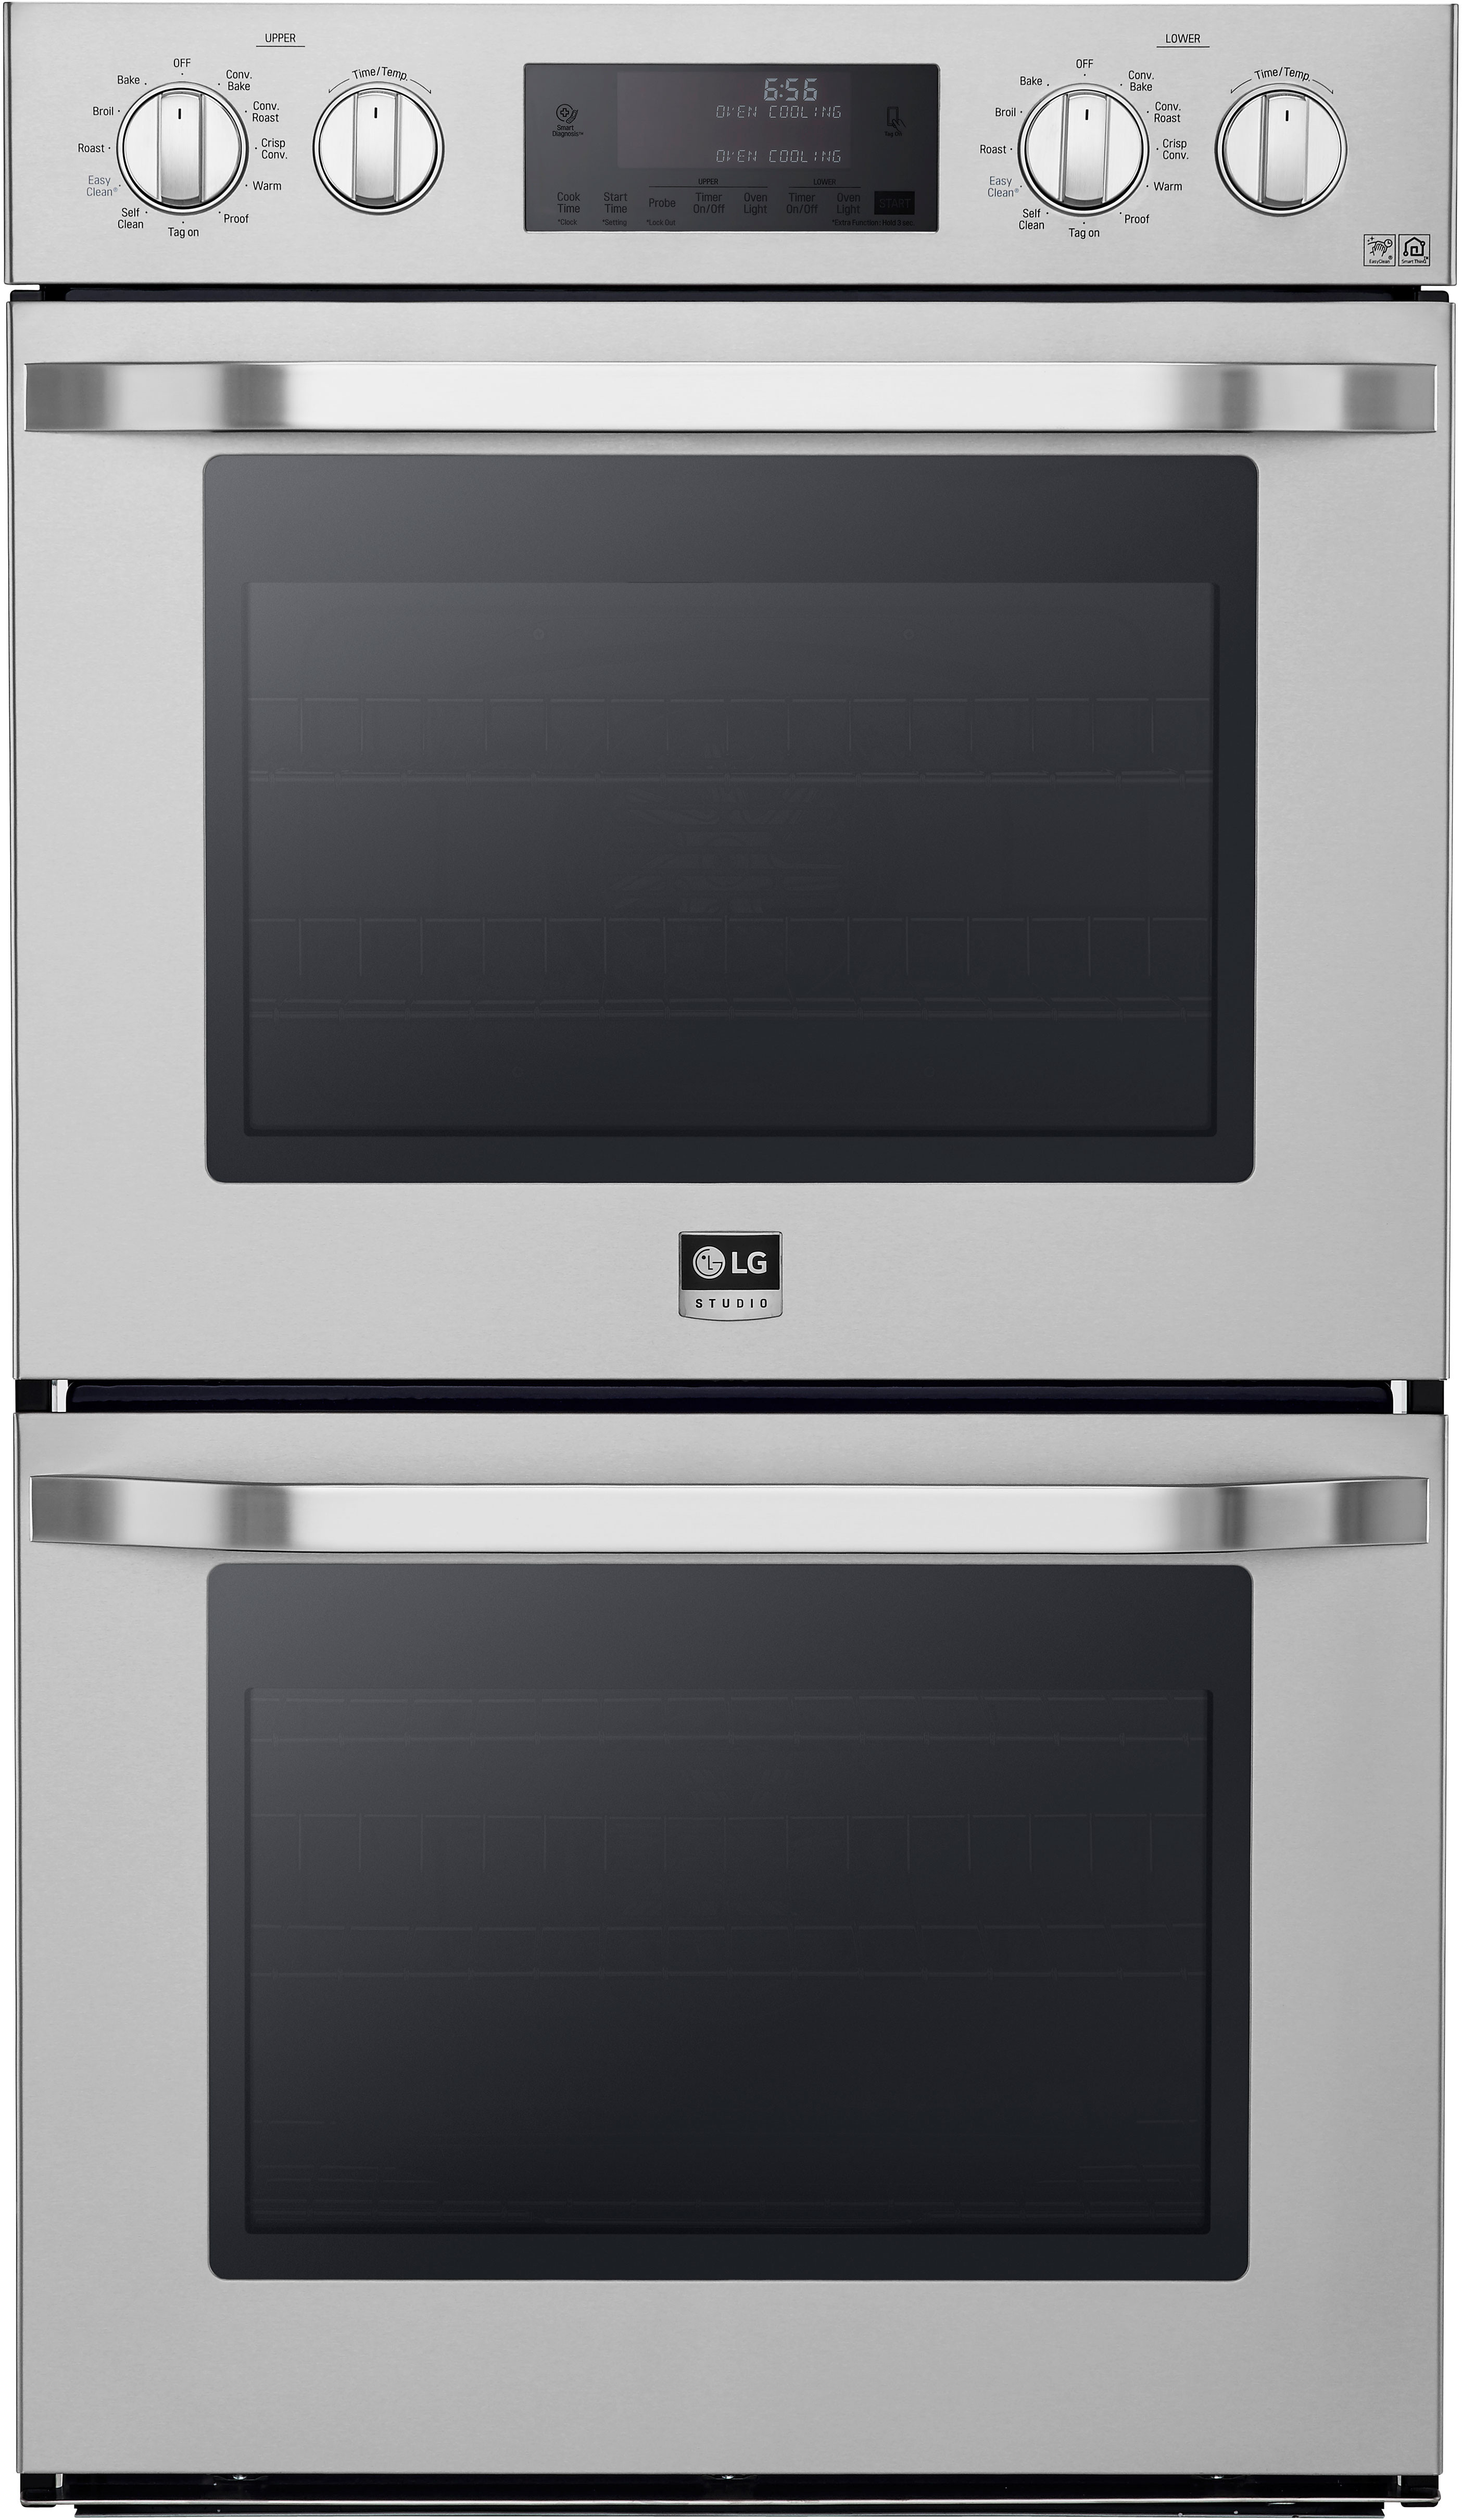 Lg Lswd306st 30 Inch Double Electric Wall Oven With Convectionc Temperature Probec Easycleanc 9 4 Total Capacity Hidden Bake Element 2 500w 8 P Broiler